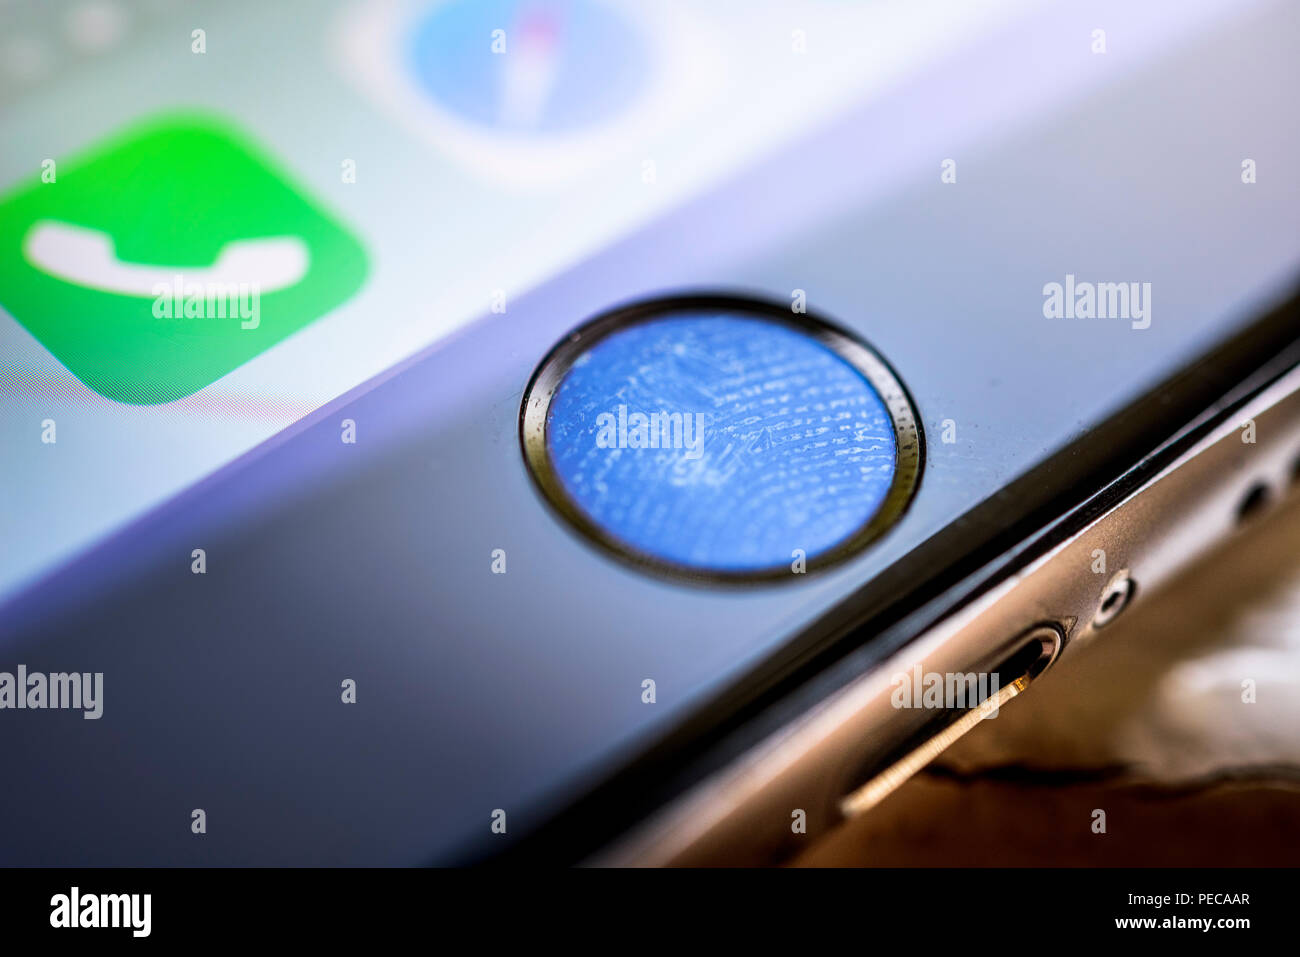 Close-up of Home button of the iPhone 6s with fingerprint on